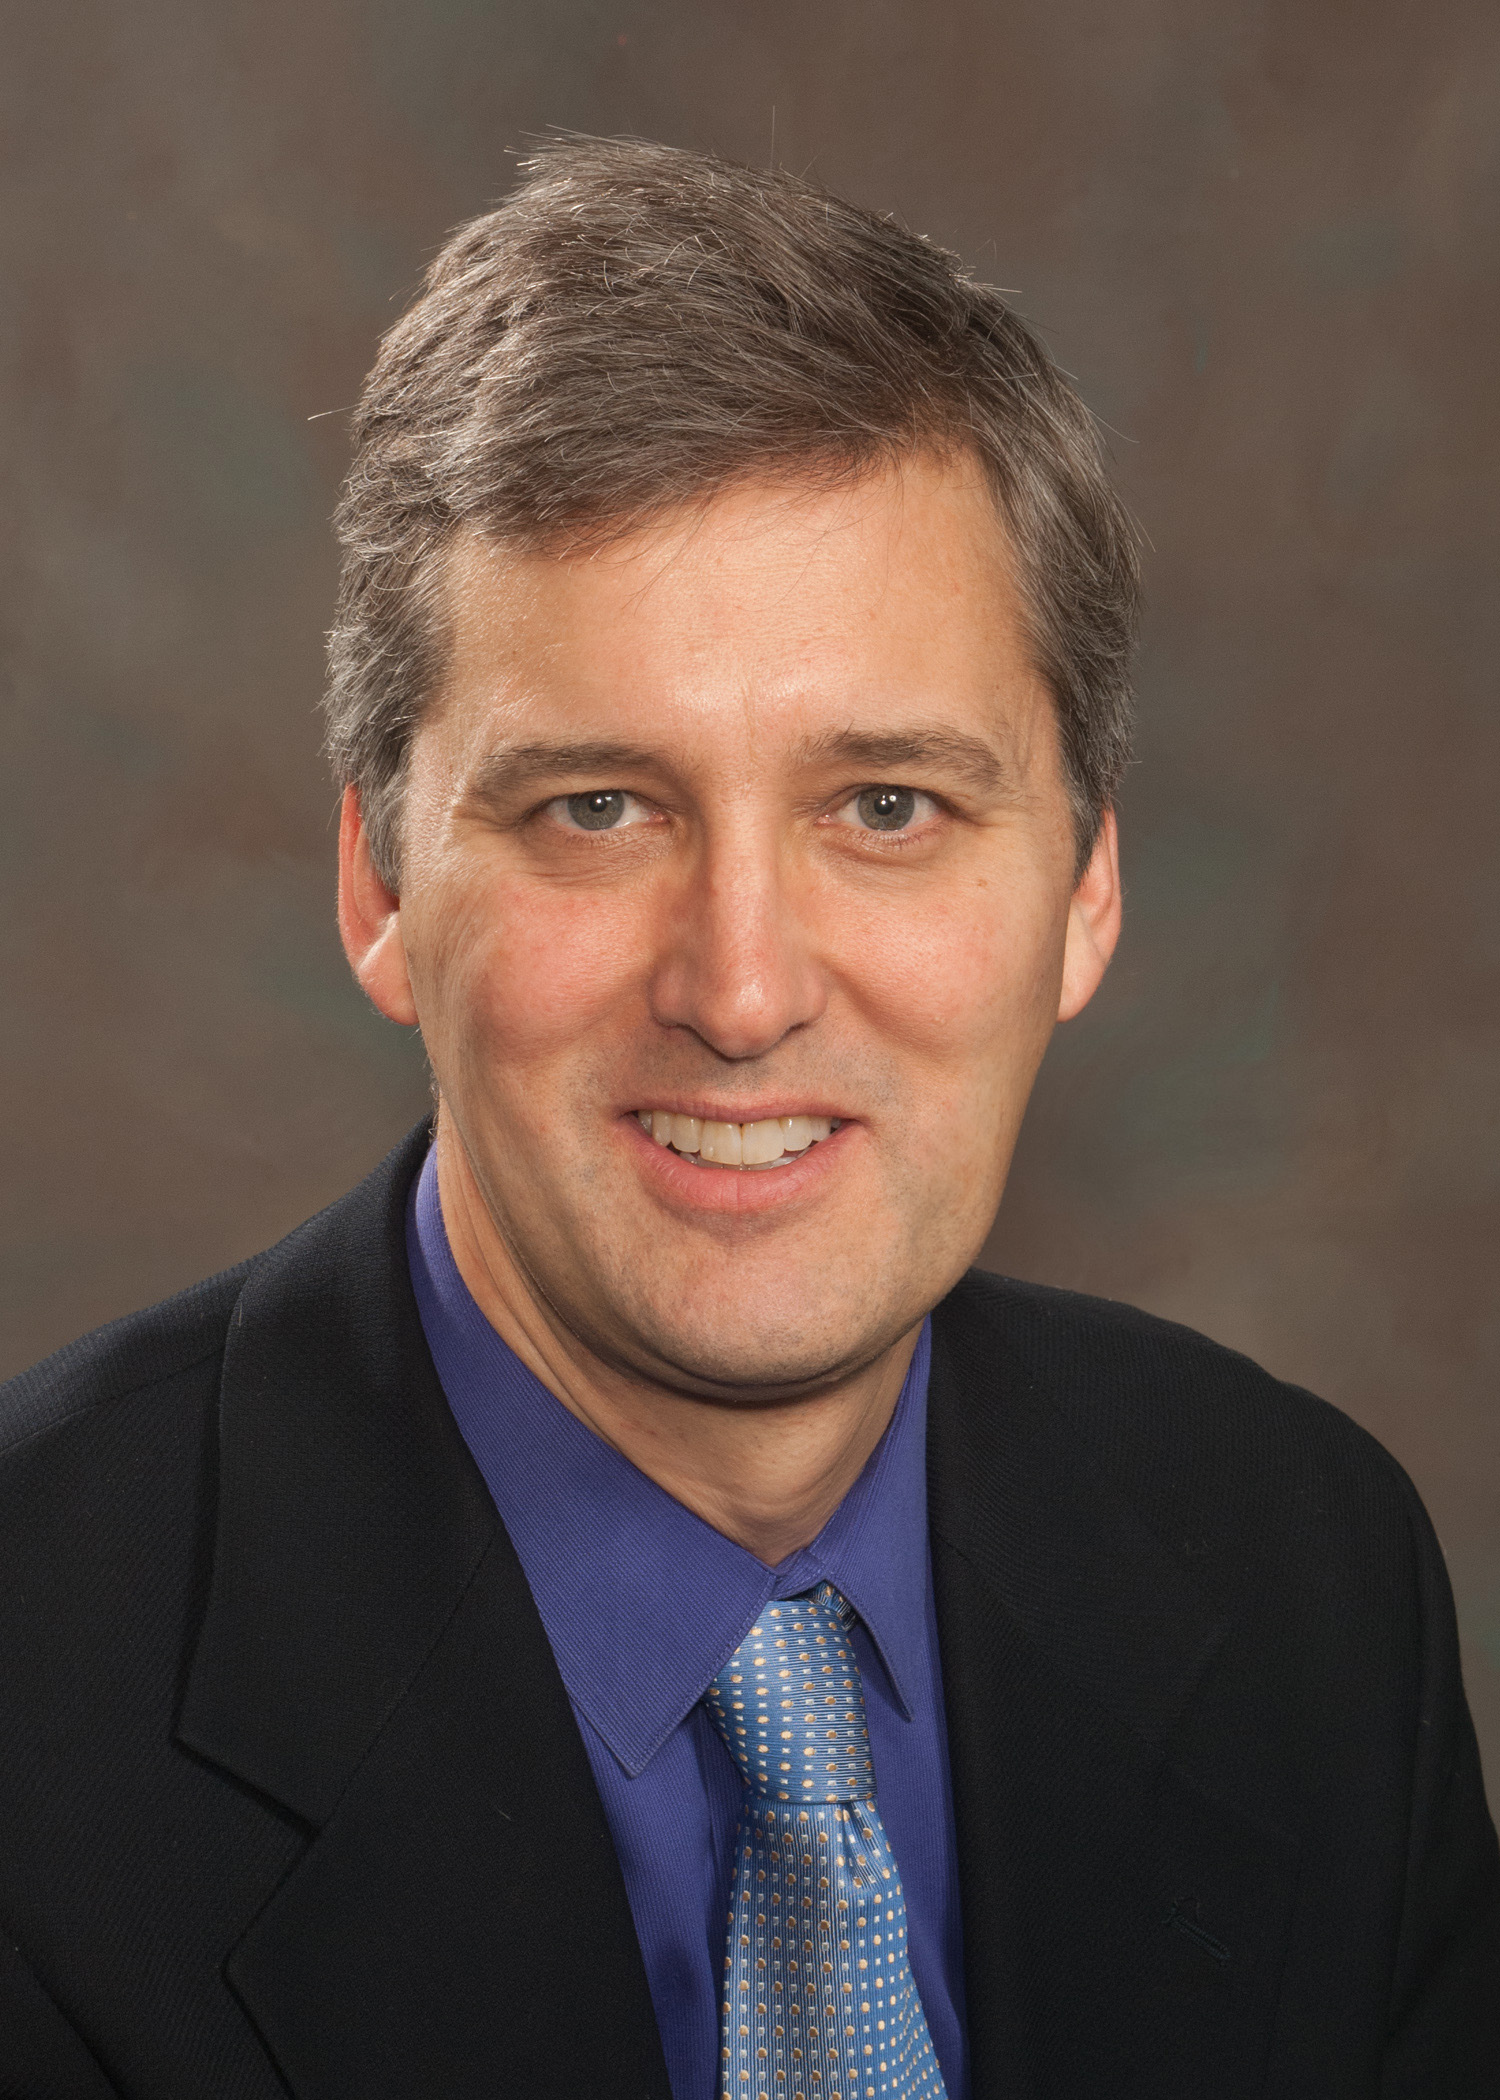 <p>Dr. Matthew Wynia, director of the Center for Bioethics and Humanities at the University of Colorado</p>